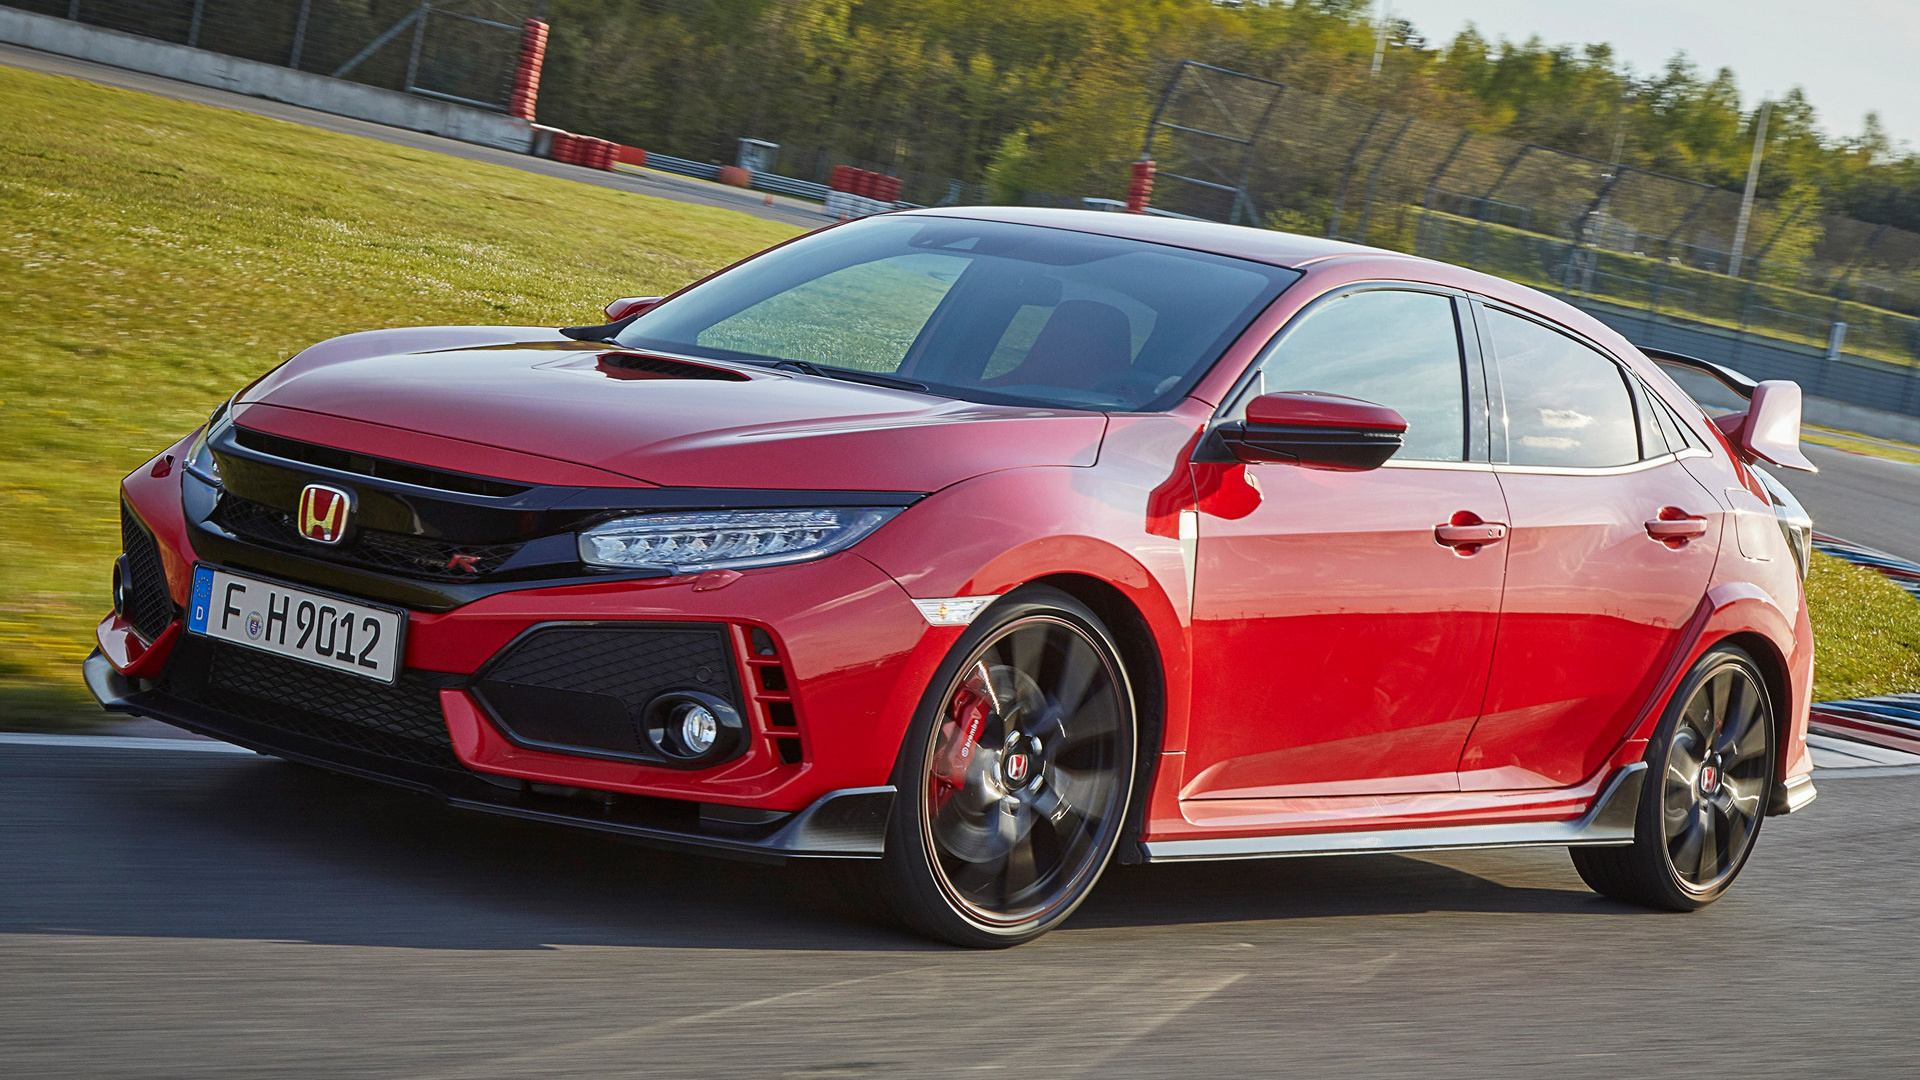 Honda Civic Type R (2017) Wallpapers and HD Images - Car Pixel